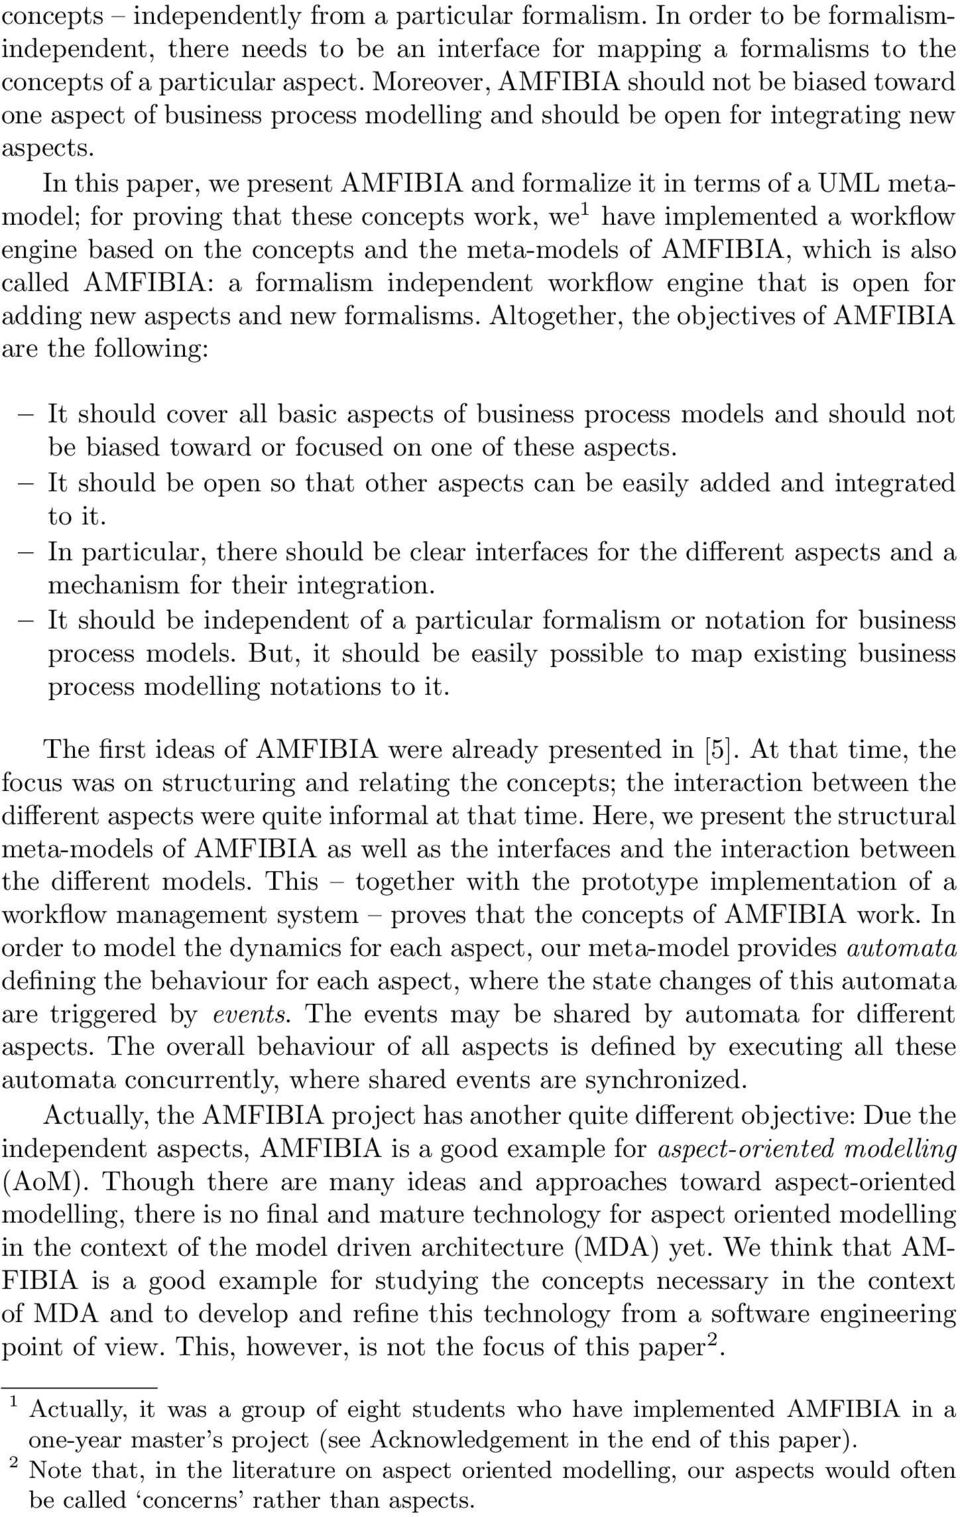 In this paper, we present AMFIBIA and formalize it in terms of a UML metamodel; for proving that these concepts work, we 1 have implemented a workflow engine based on the concepts and the meta-models